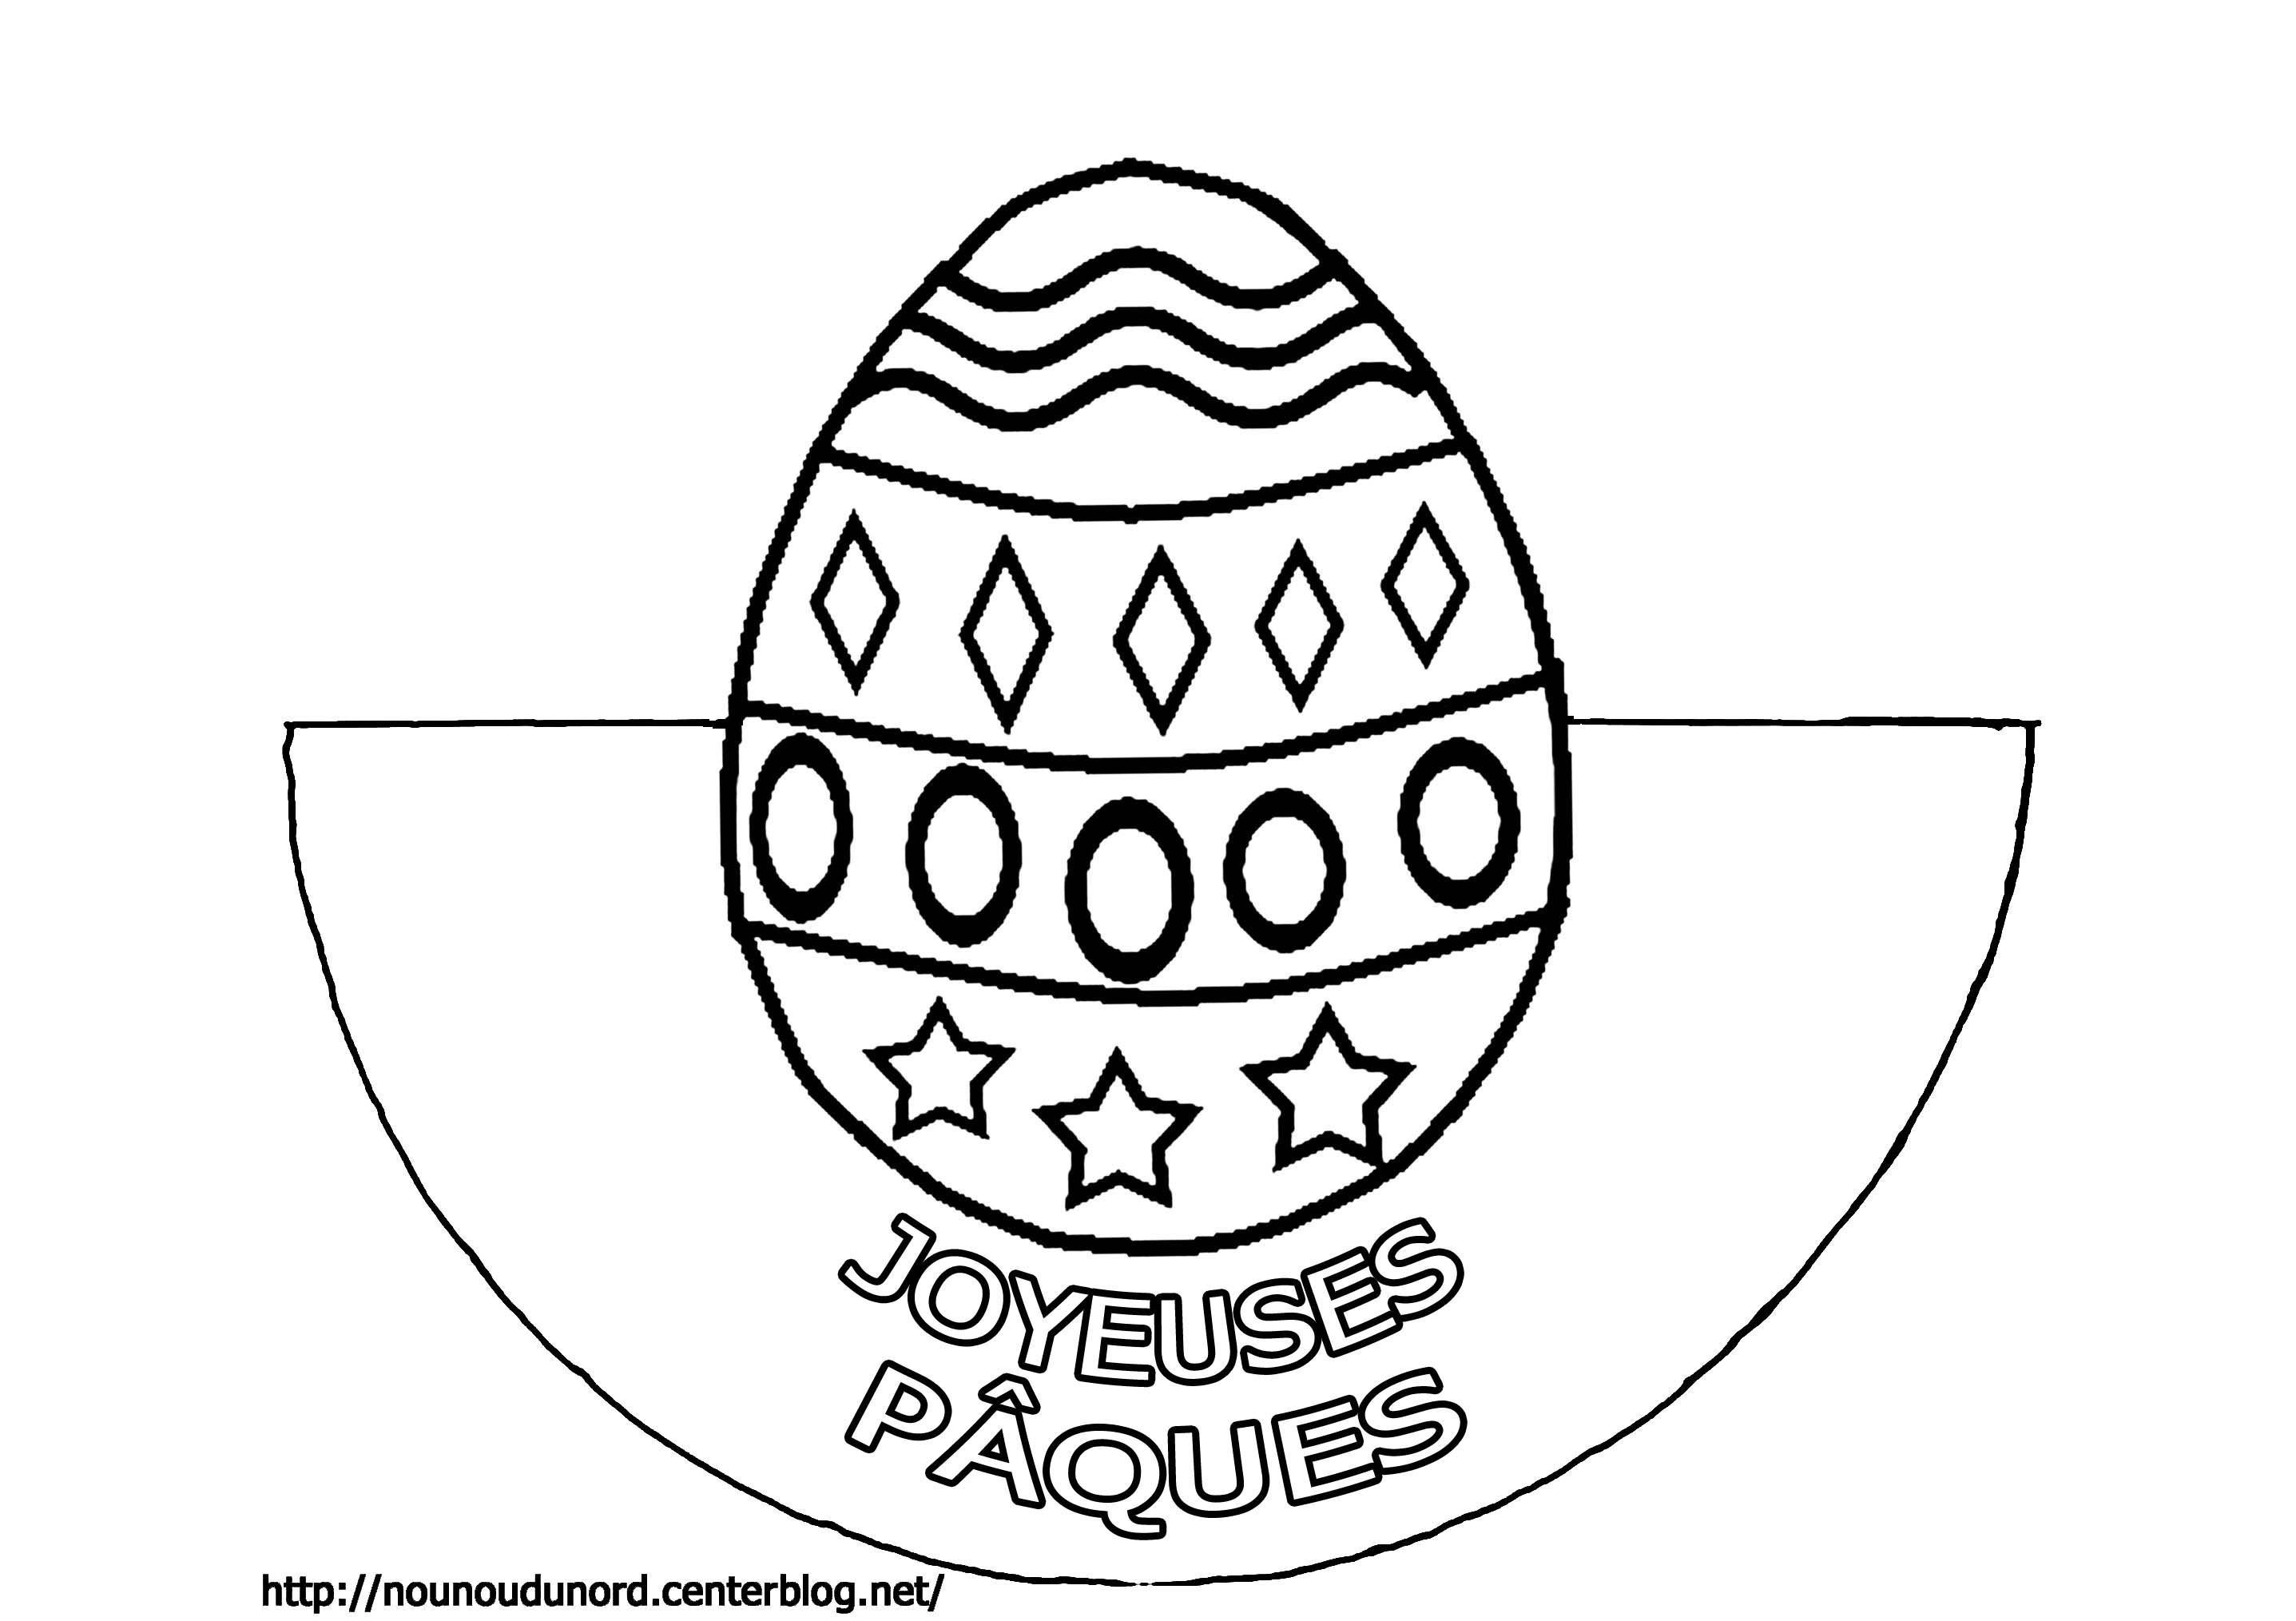 zelf coloring pages to print - photo#38